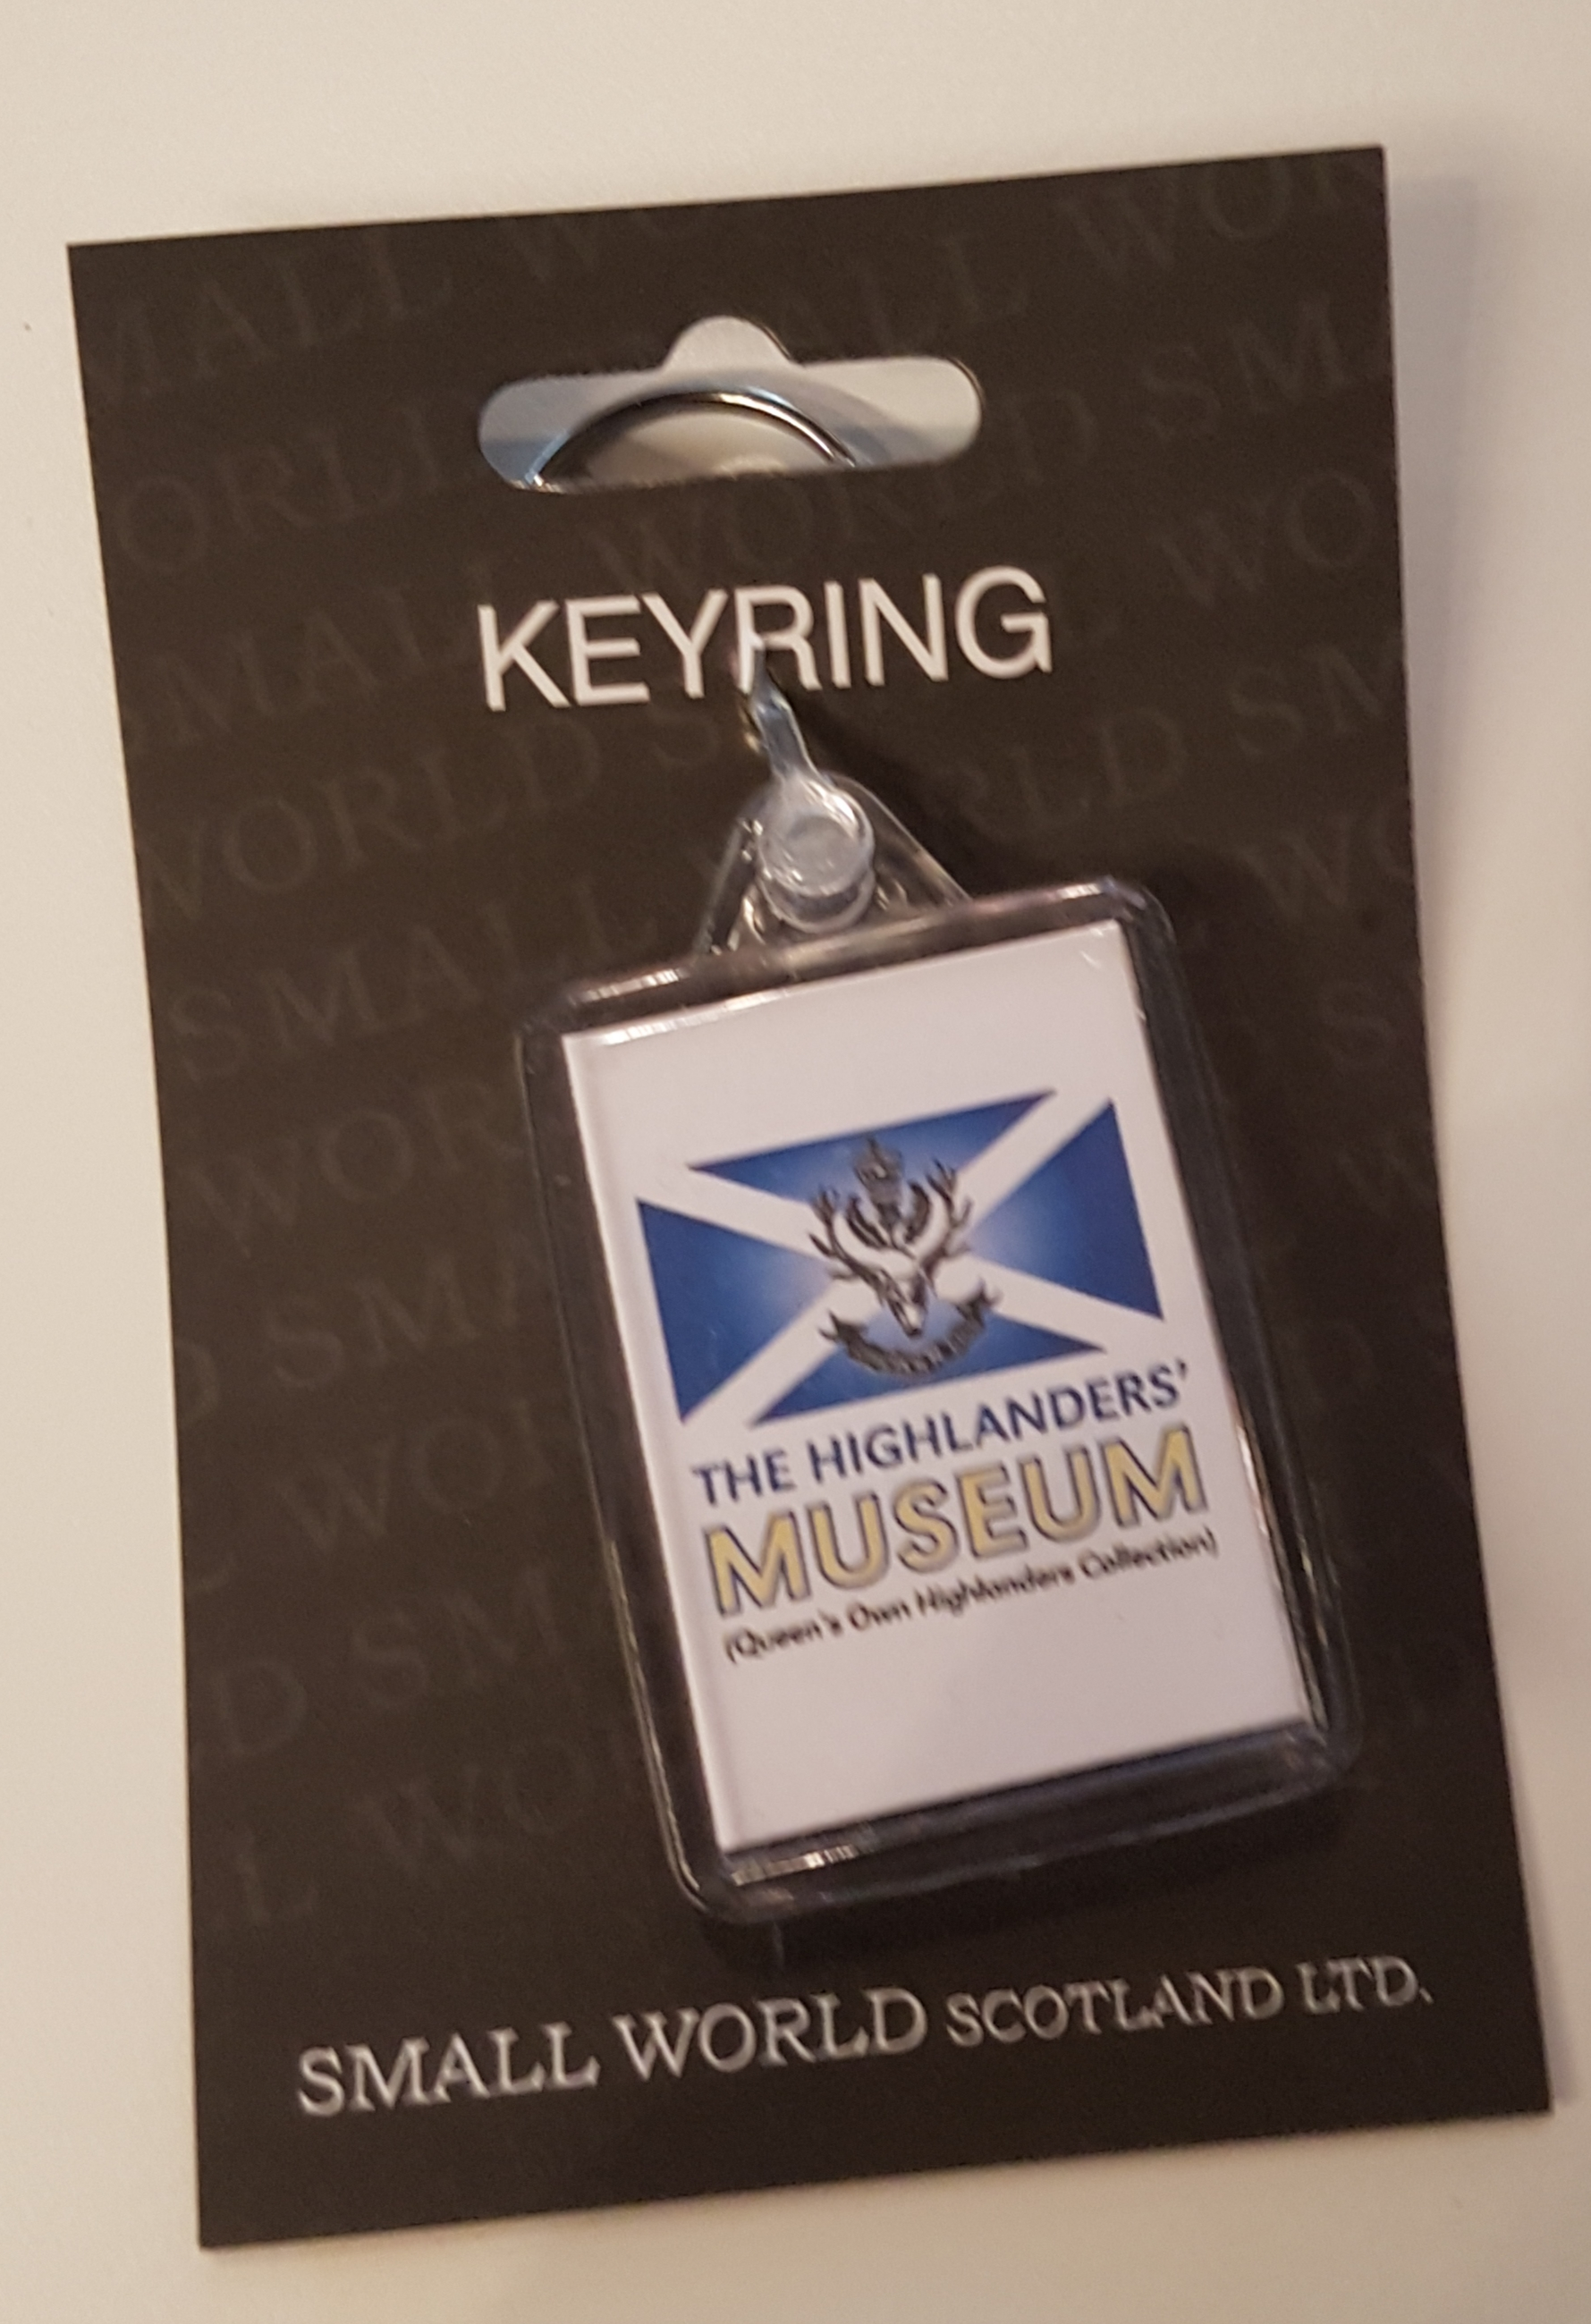 The Highlanders' Museum Keyring